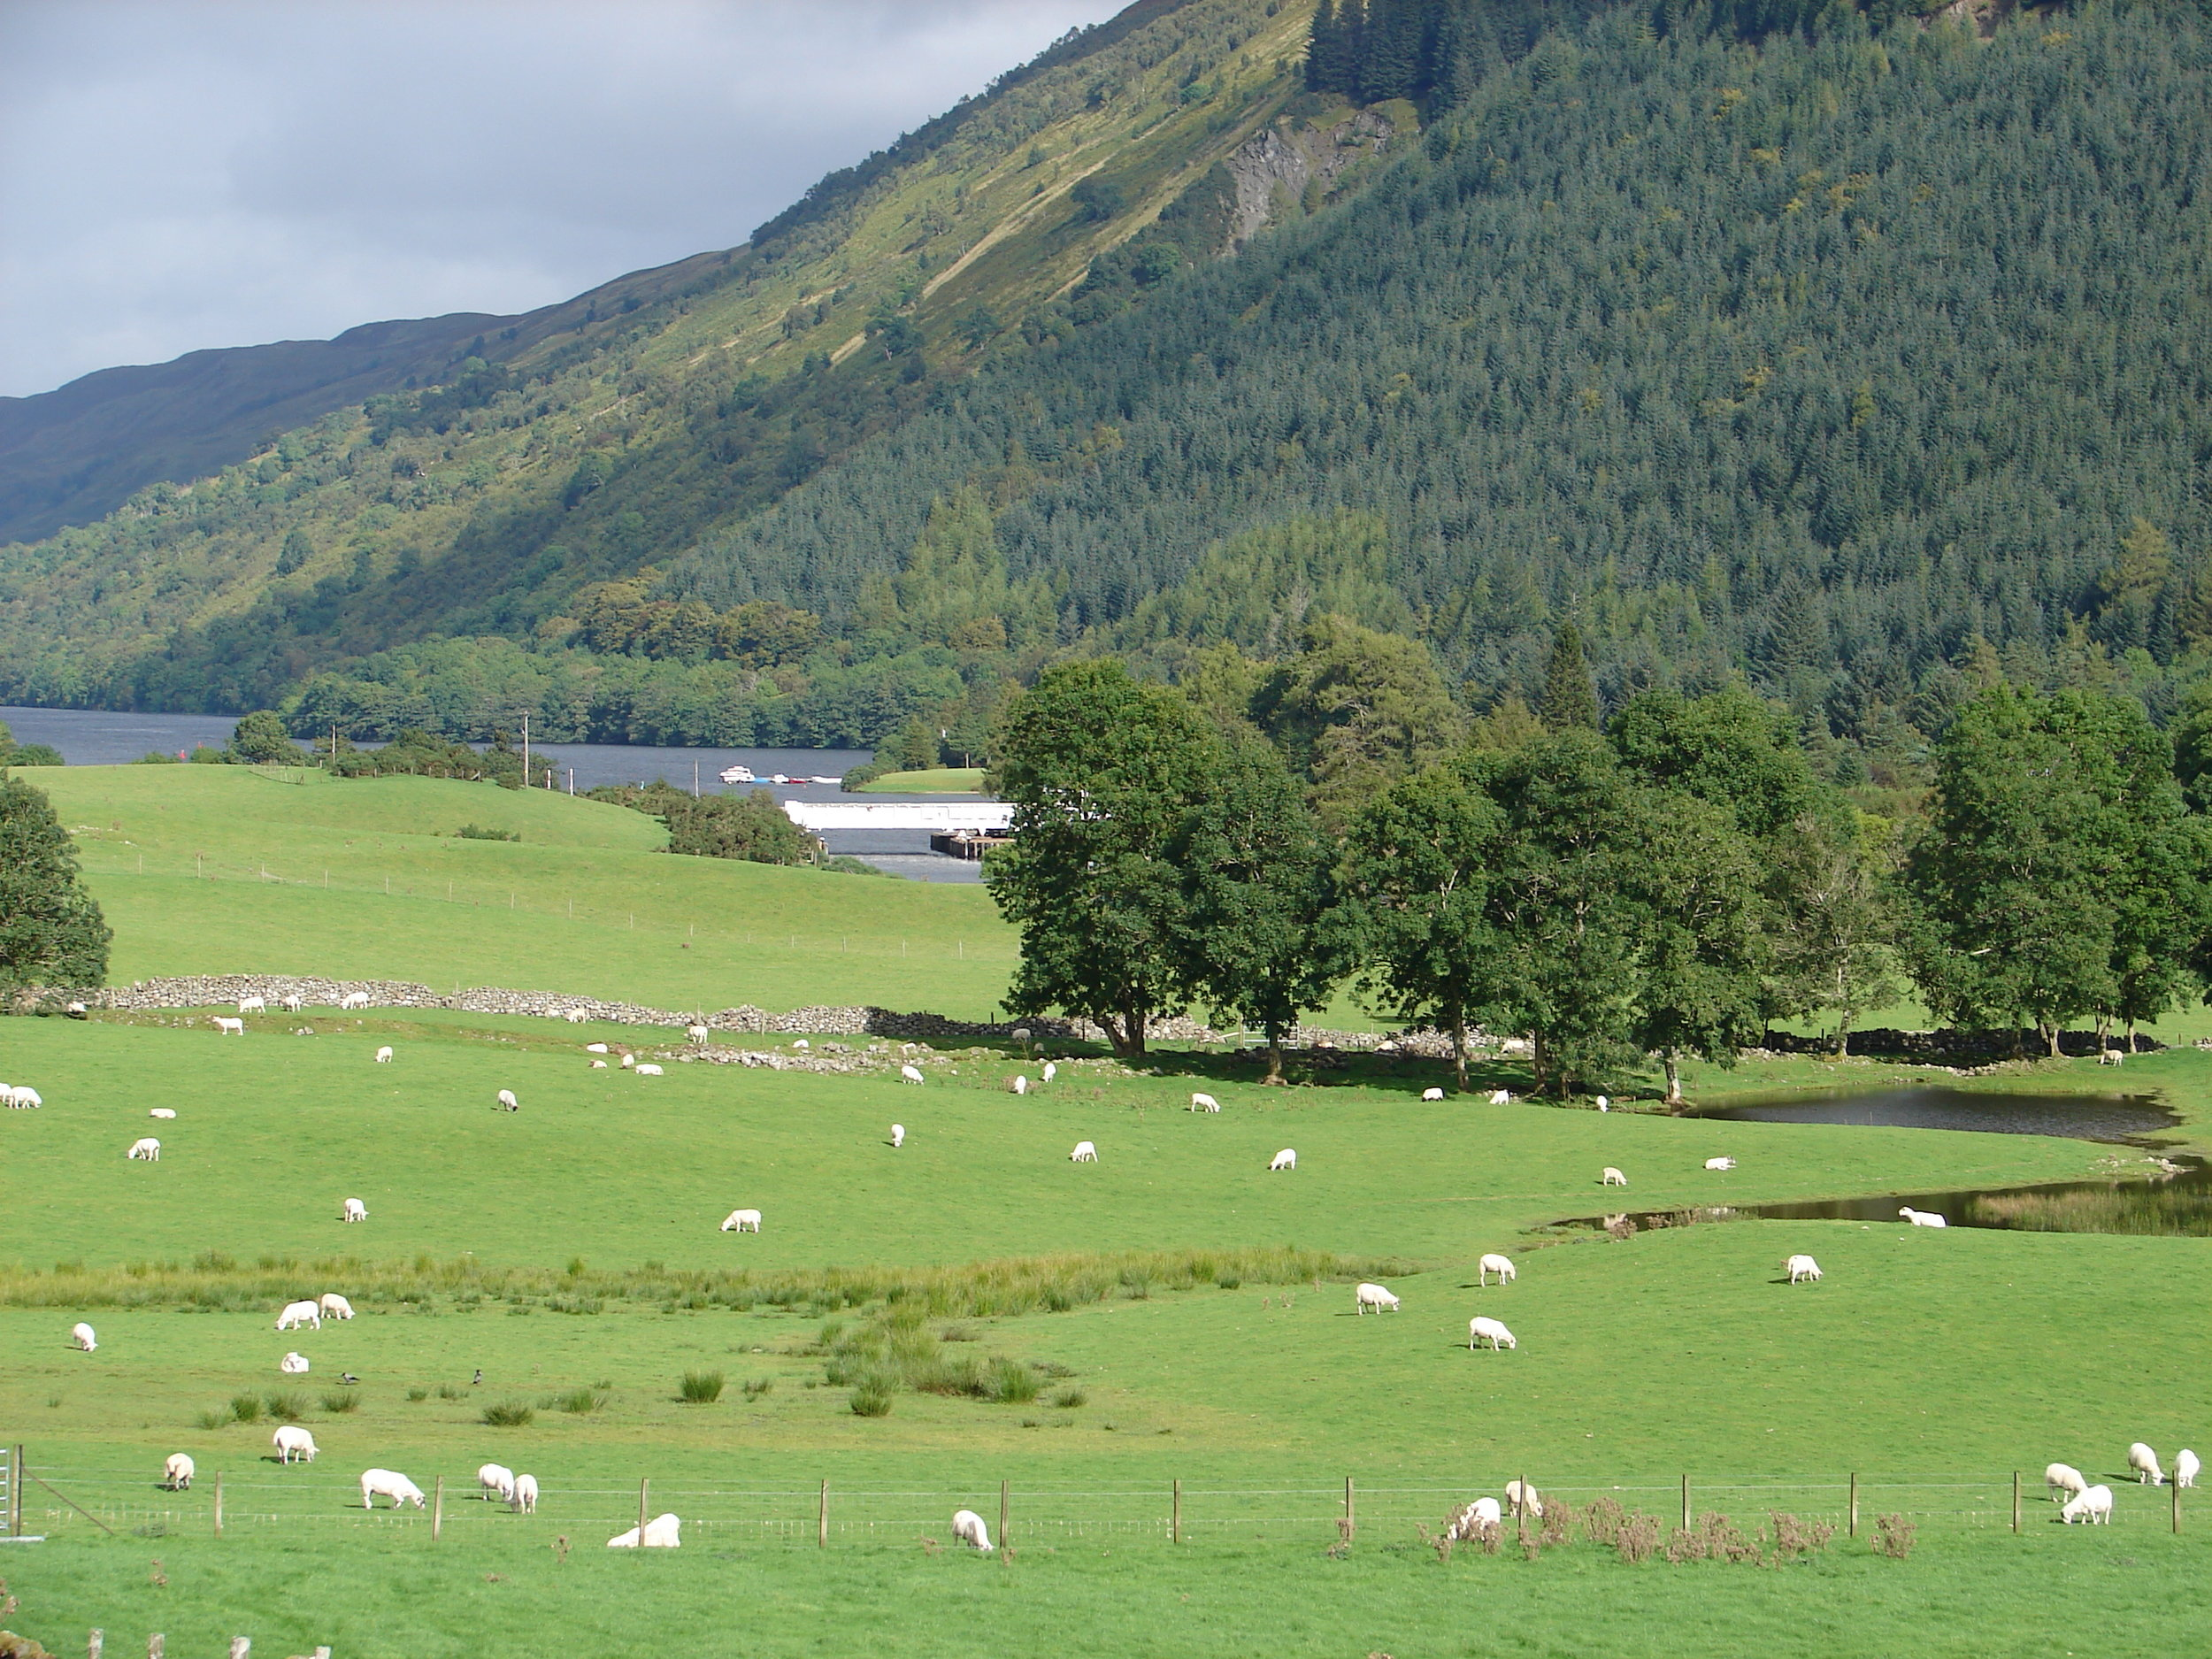 Sheep farming and rock walls are common features of the Scottish countryside.